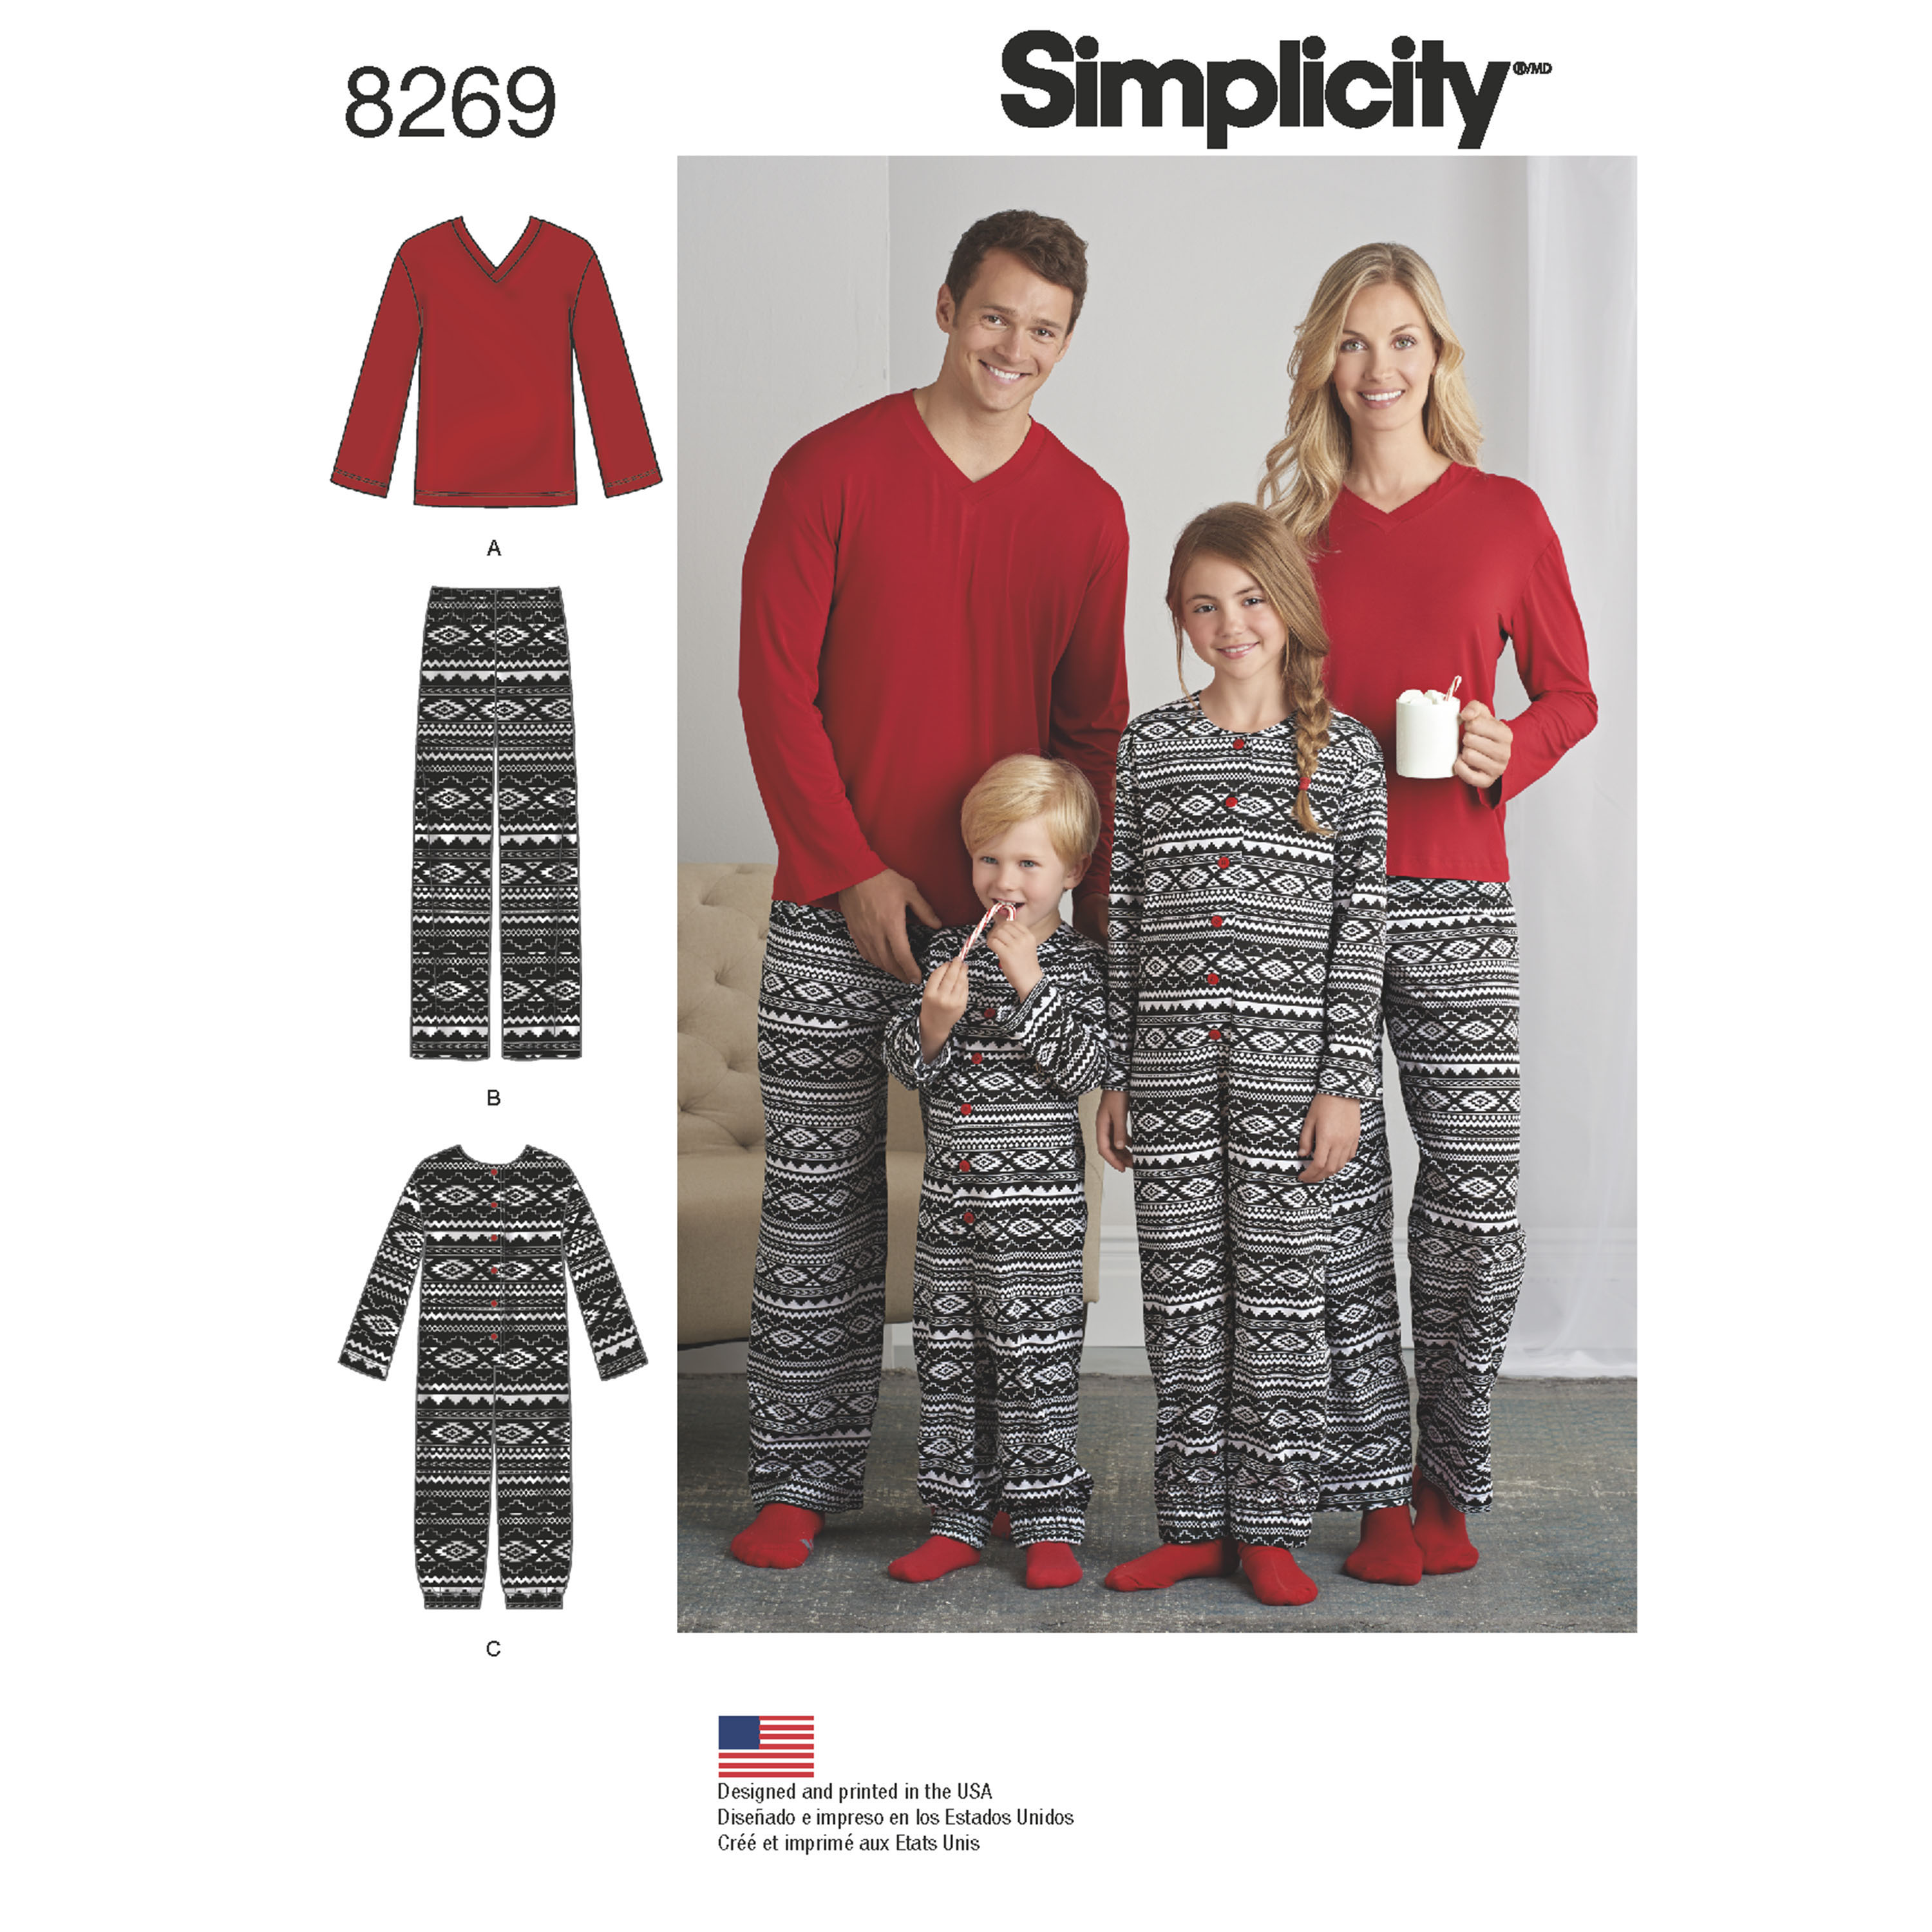 cff82b503c Simplicity Simplicity Pattern 8269 Child s Girls  and Boys  Jumpsuit and ...